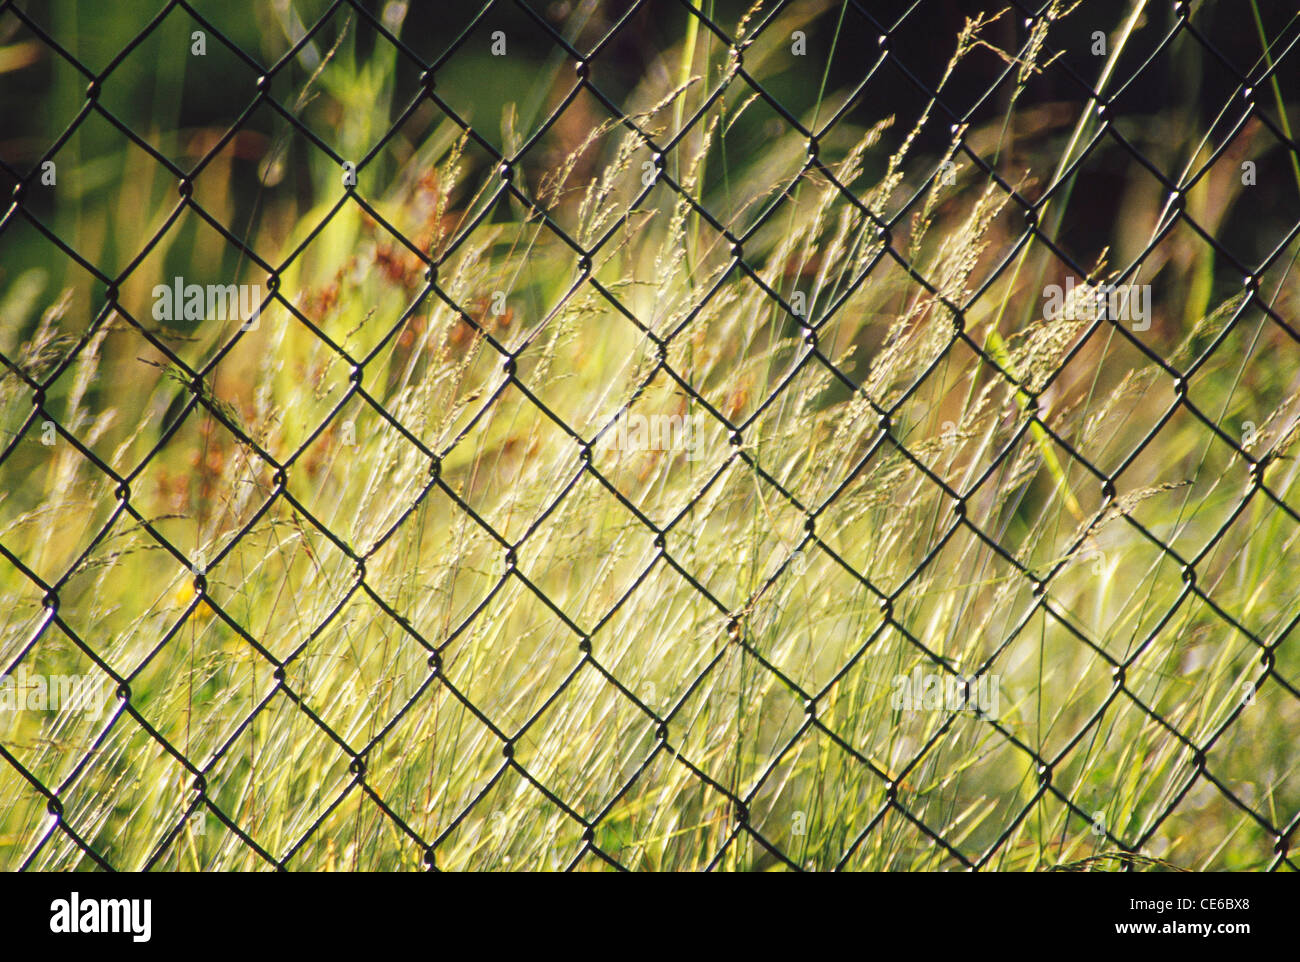 Iron wire mesh security fence Stock Photo: 43166992 - Alamy